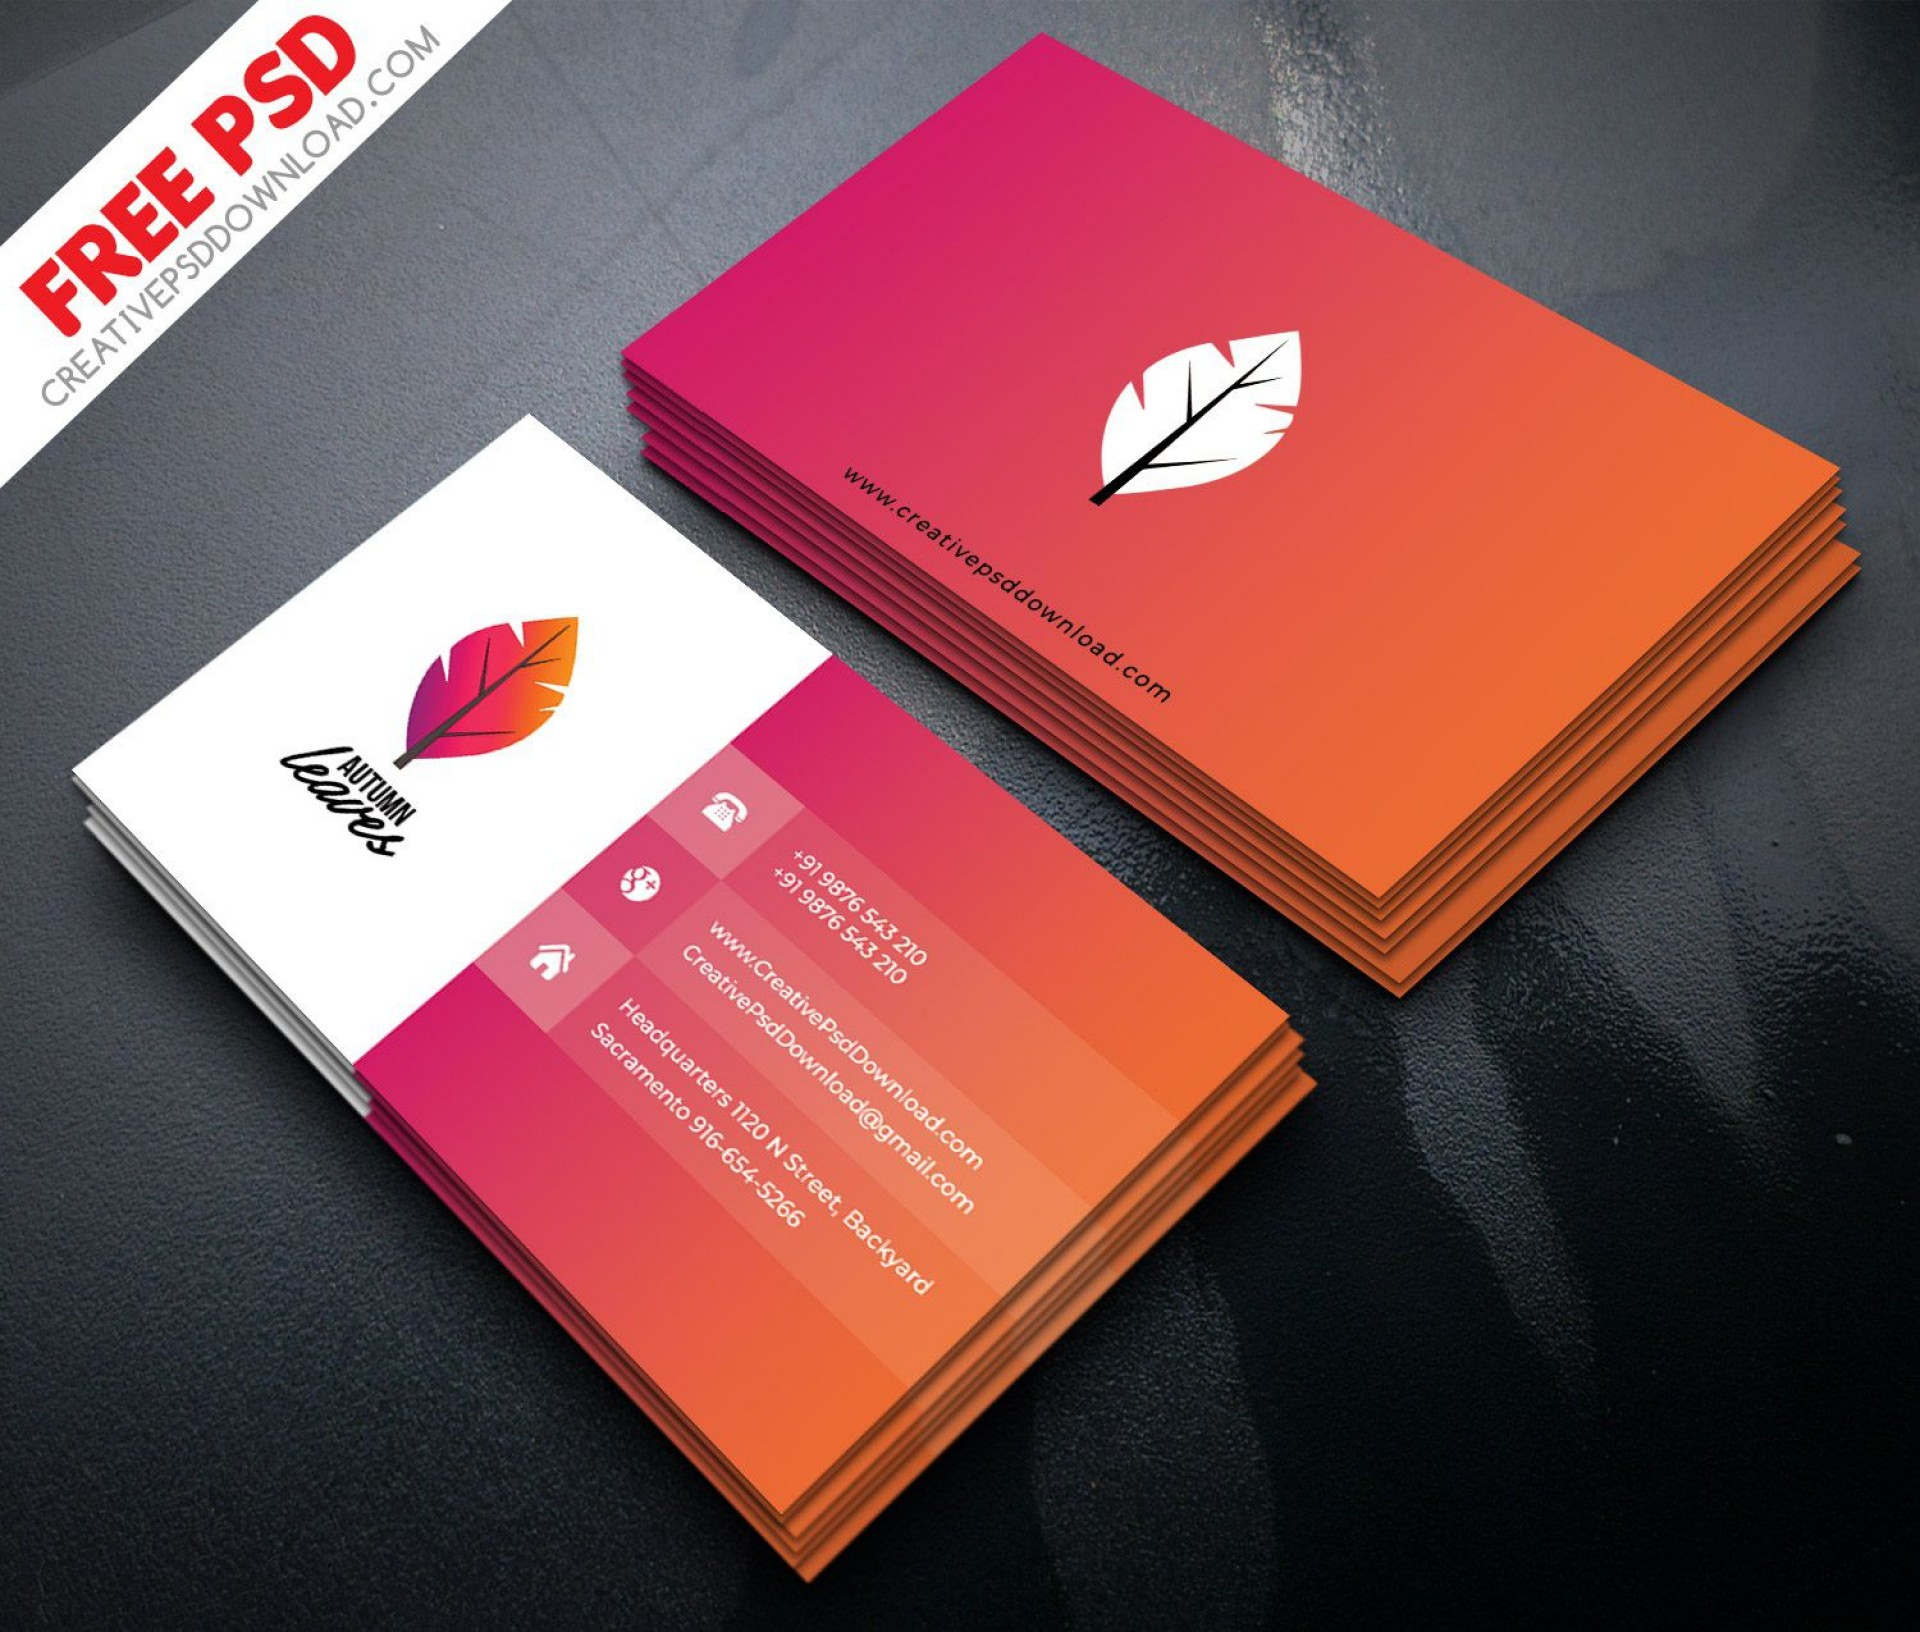 008 Shocking Free Adobe Photoshop Busines Card Template Inspiration  Templates Download1920